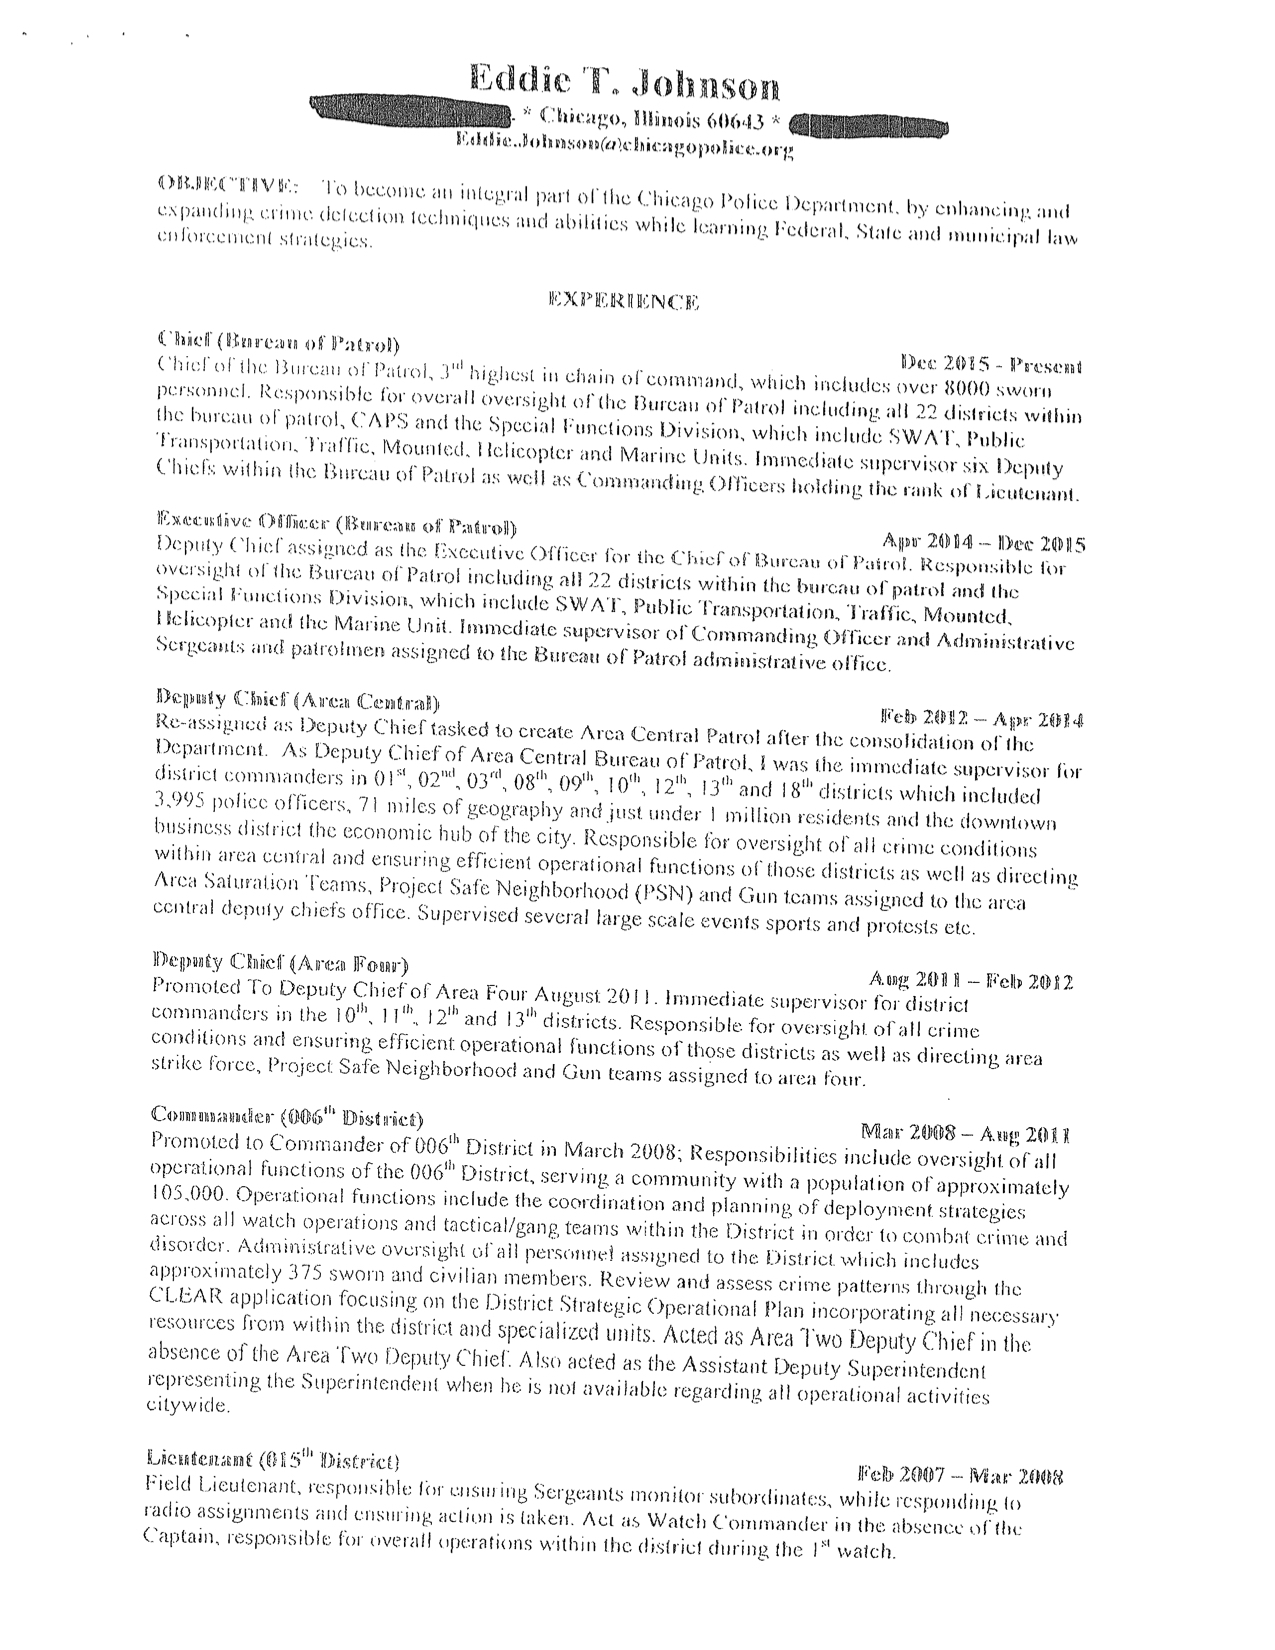 read the resume of chicago police chief eddie johnson chicago city wire